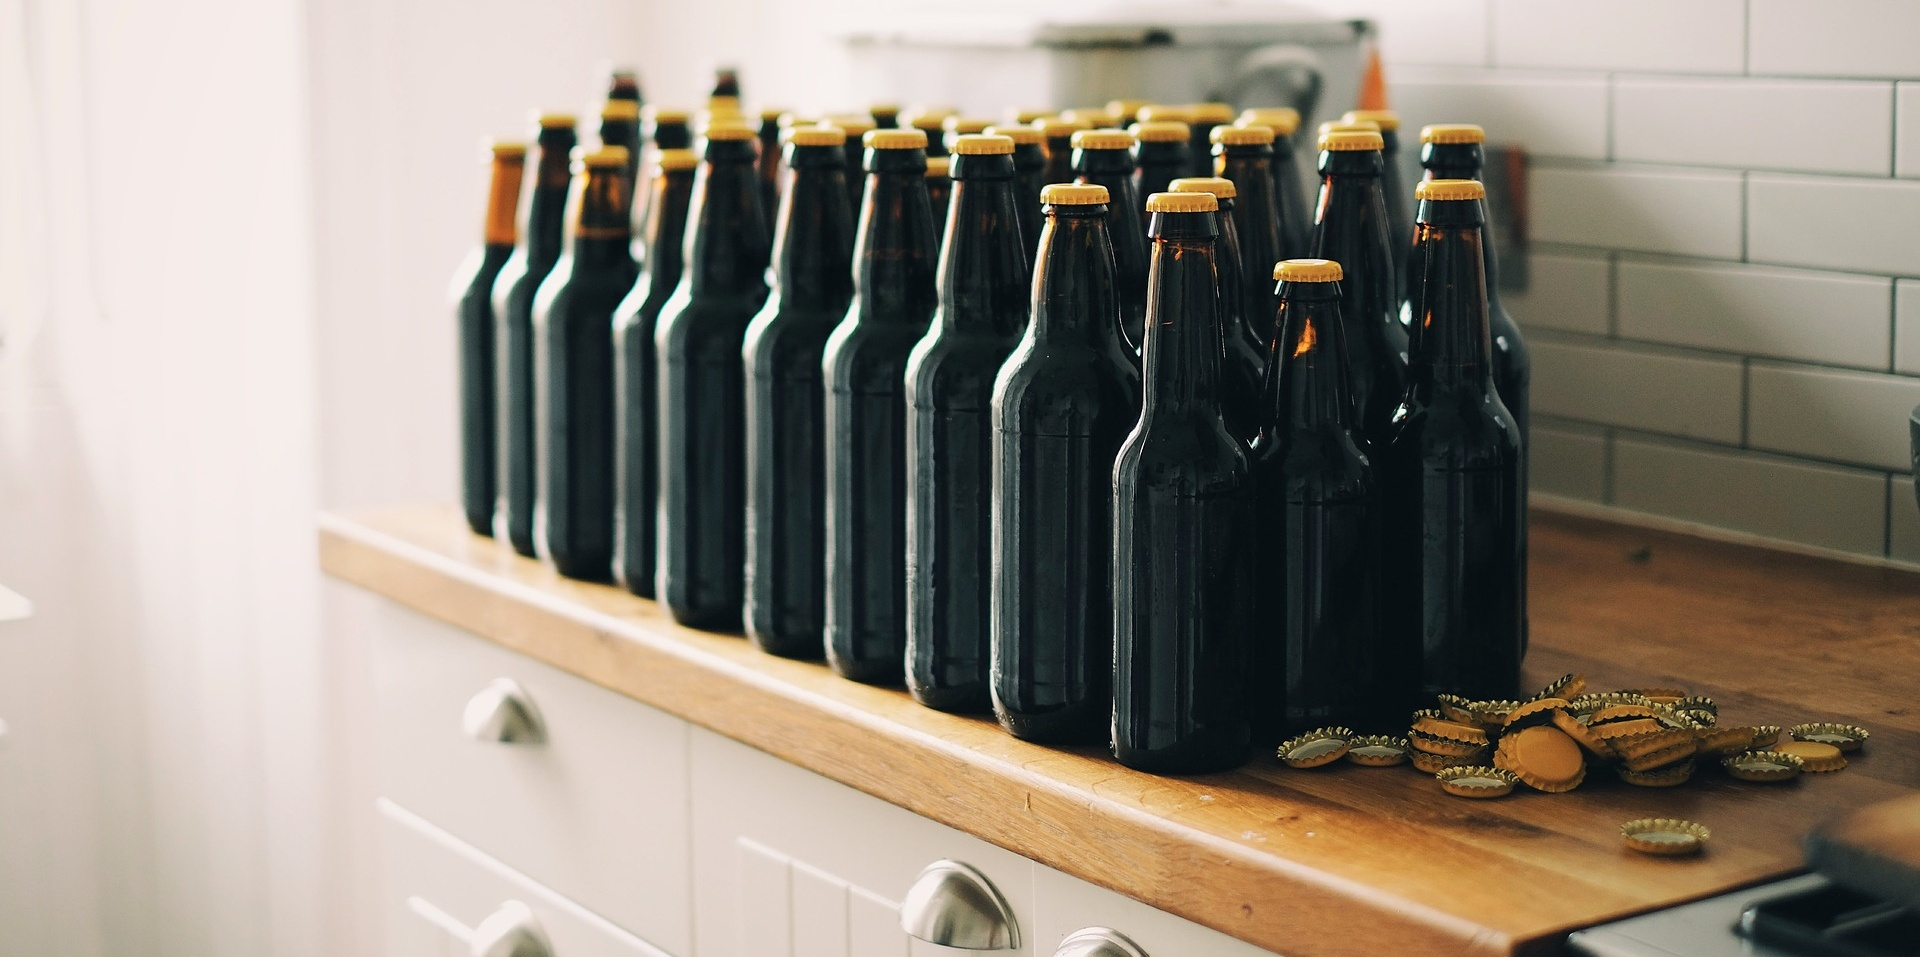 Homebrew bottles in kitchen